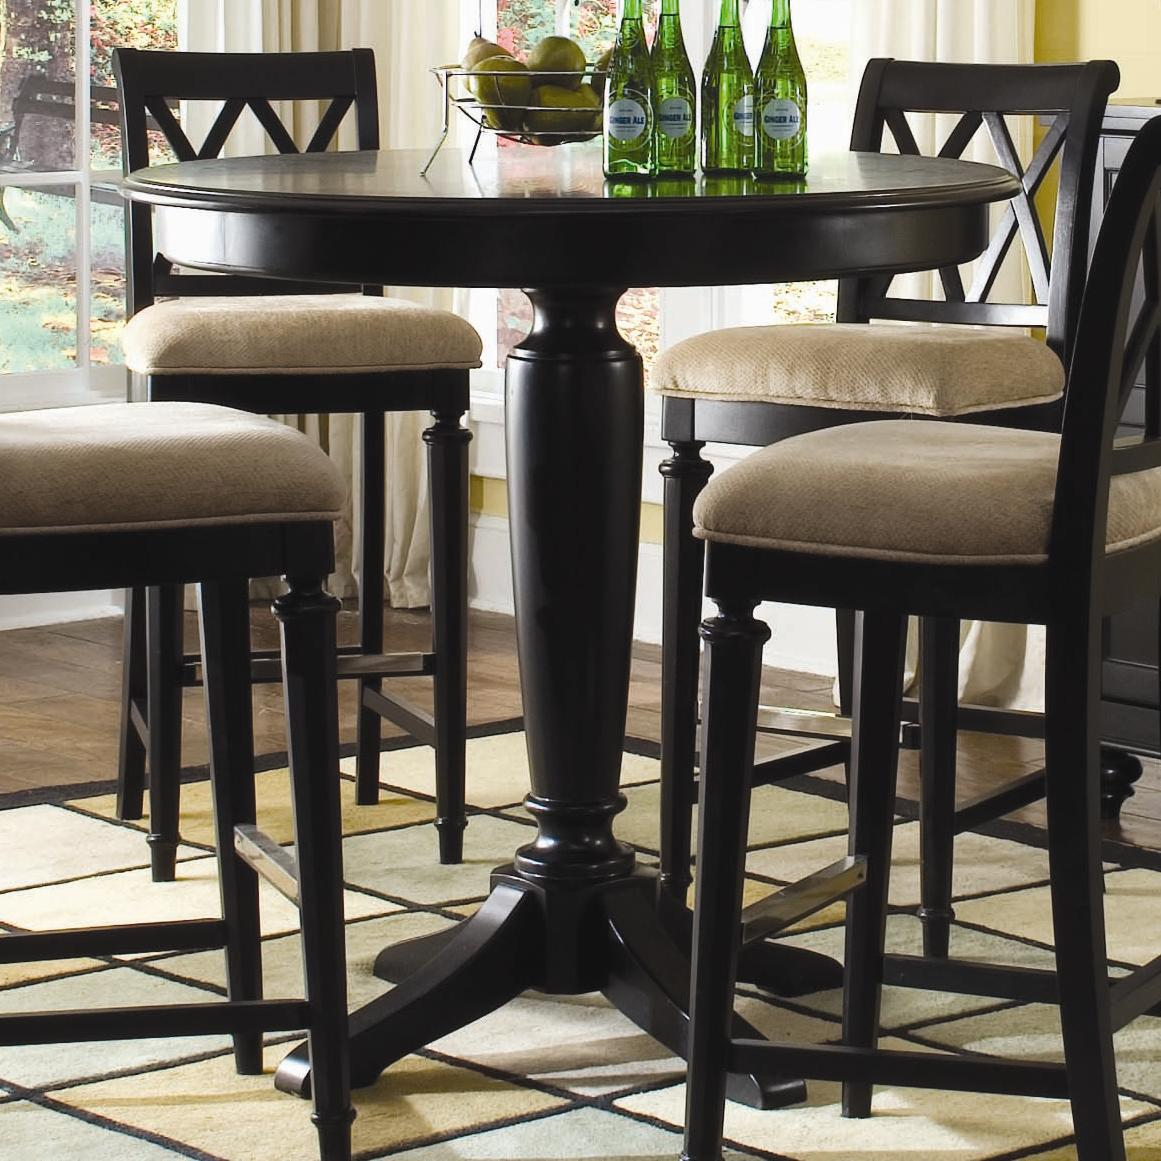 Bar Stools And Tables: IKEA Counter Height Table Design Ideas